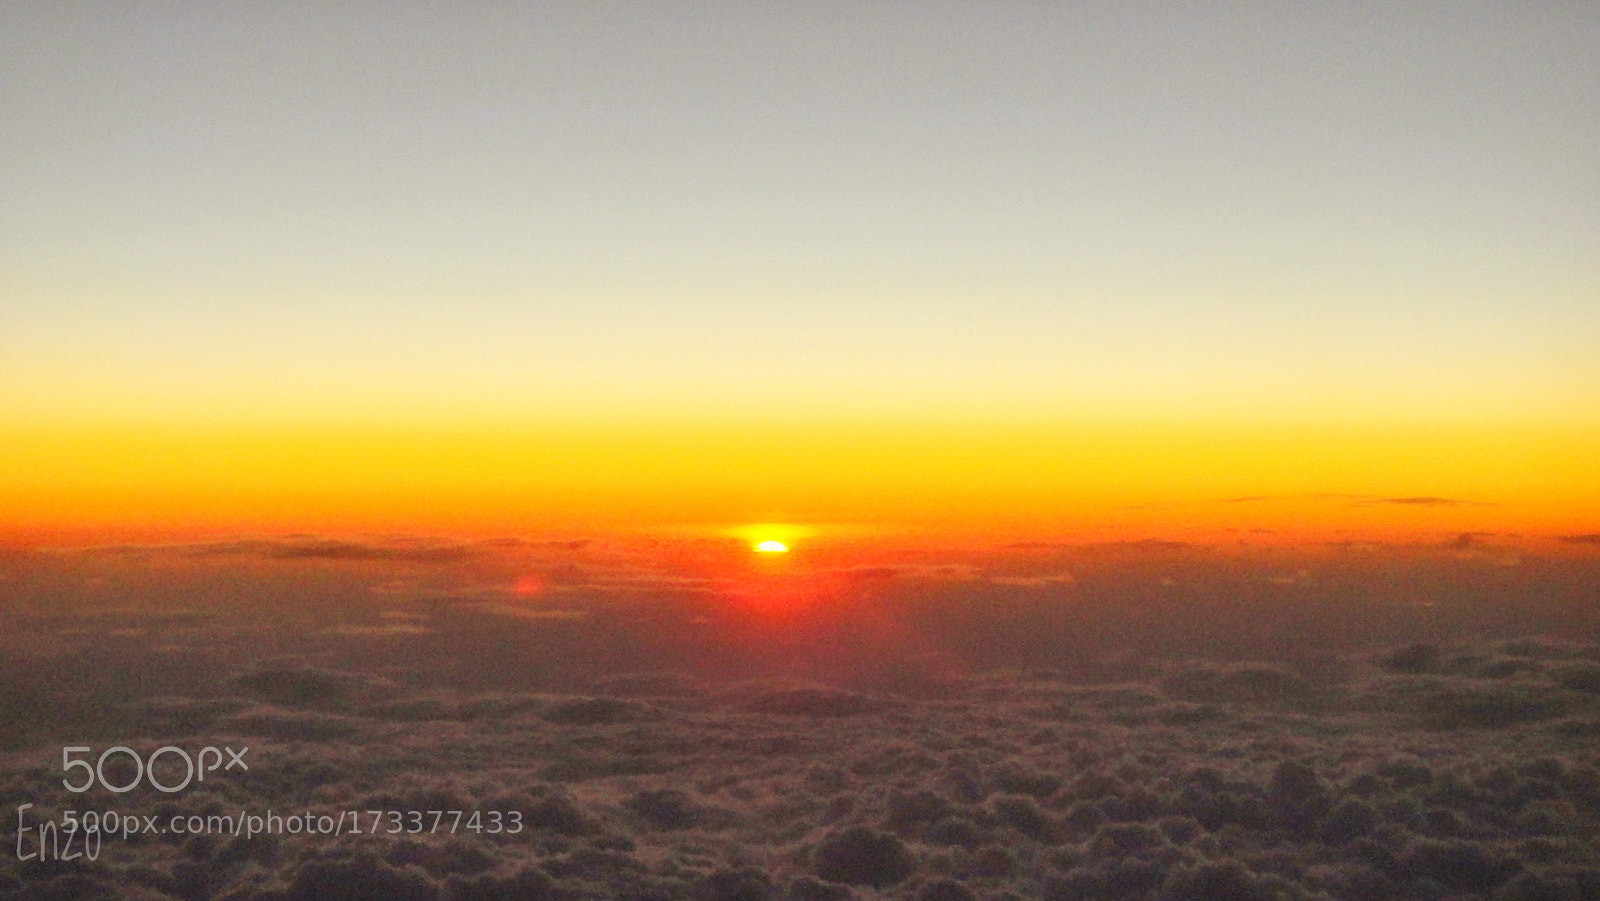 Sunset in the sky